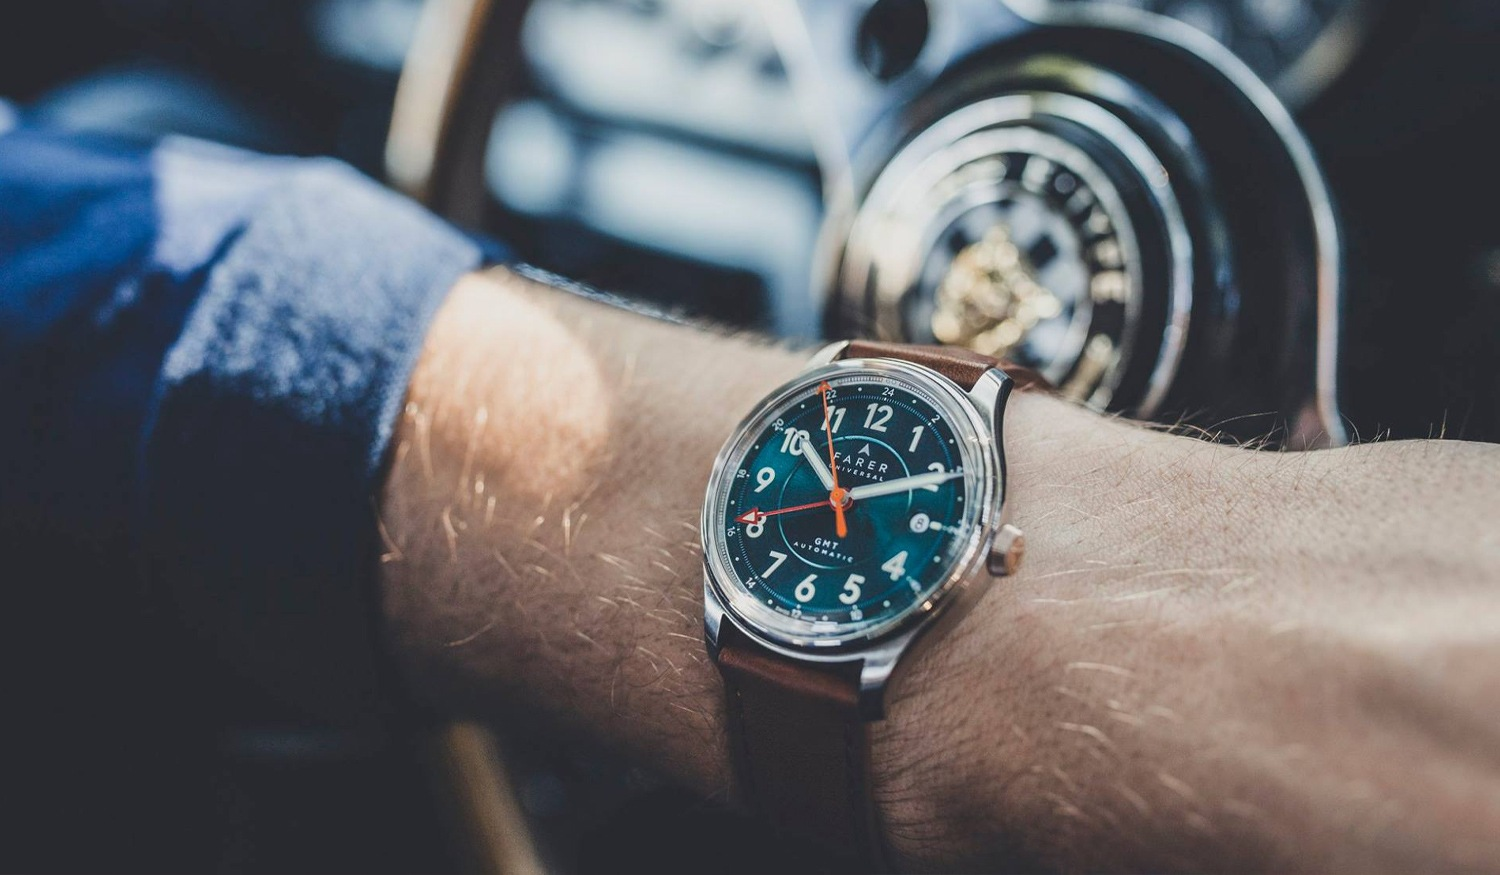 13 Up-And-Coming/Hipster Watch Brands You Should Know